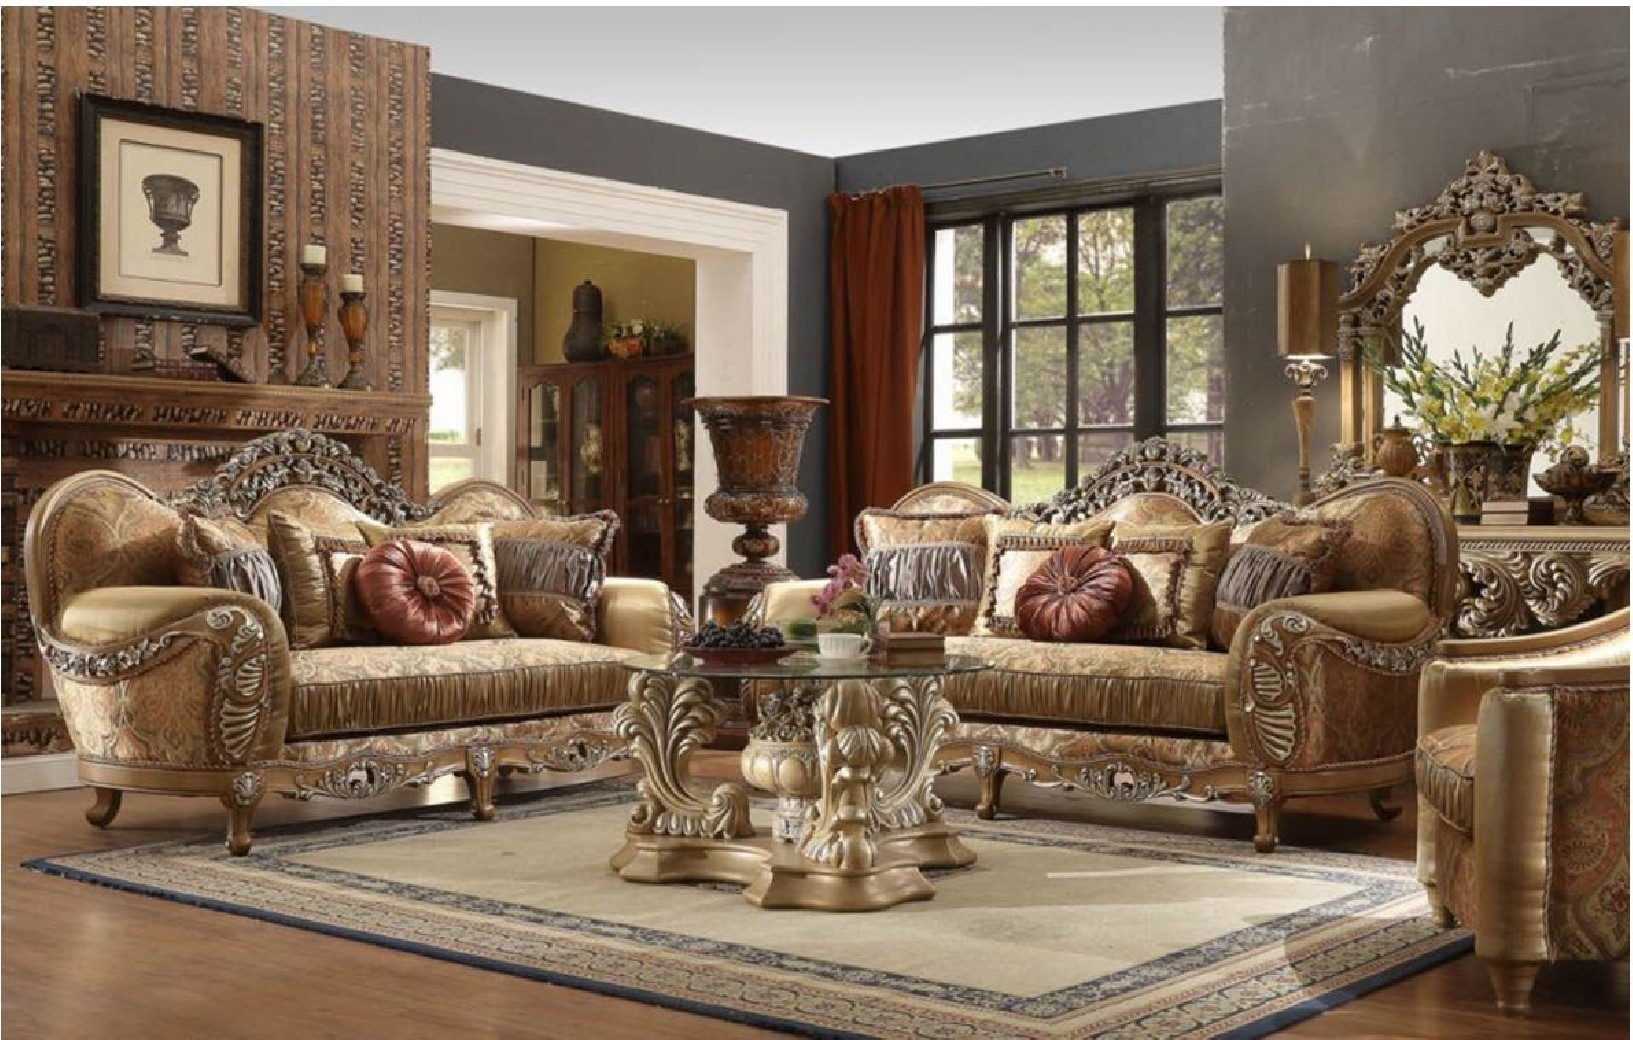 Hd 622 Homey Design Upholstery Living Room Set Victorian European in 13 Awesome Initiatives of How to Build Living Room Set